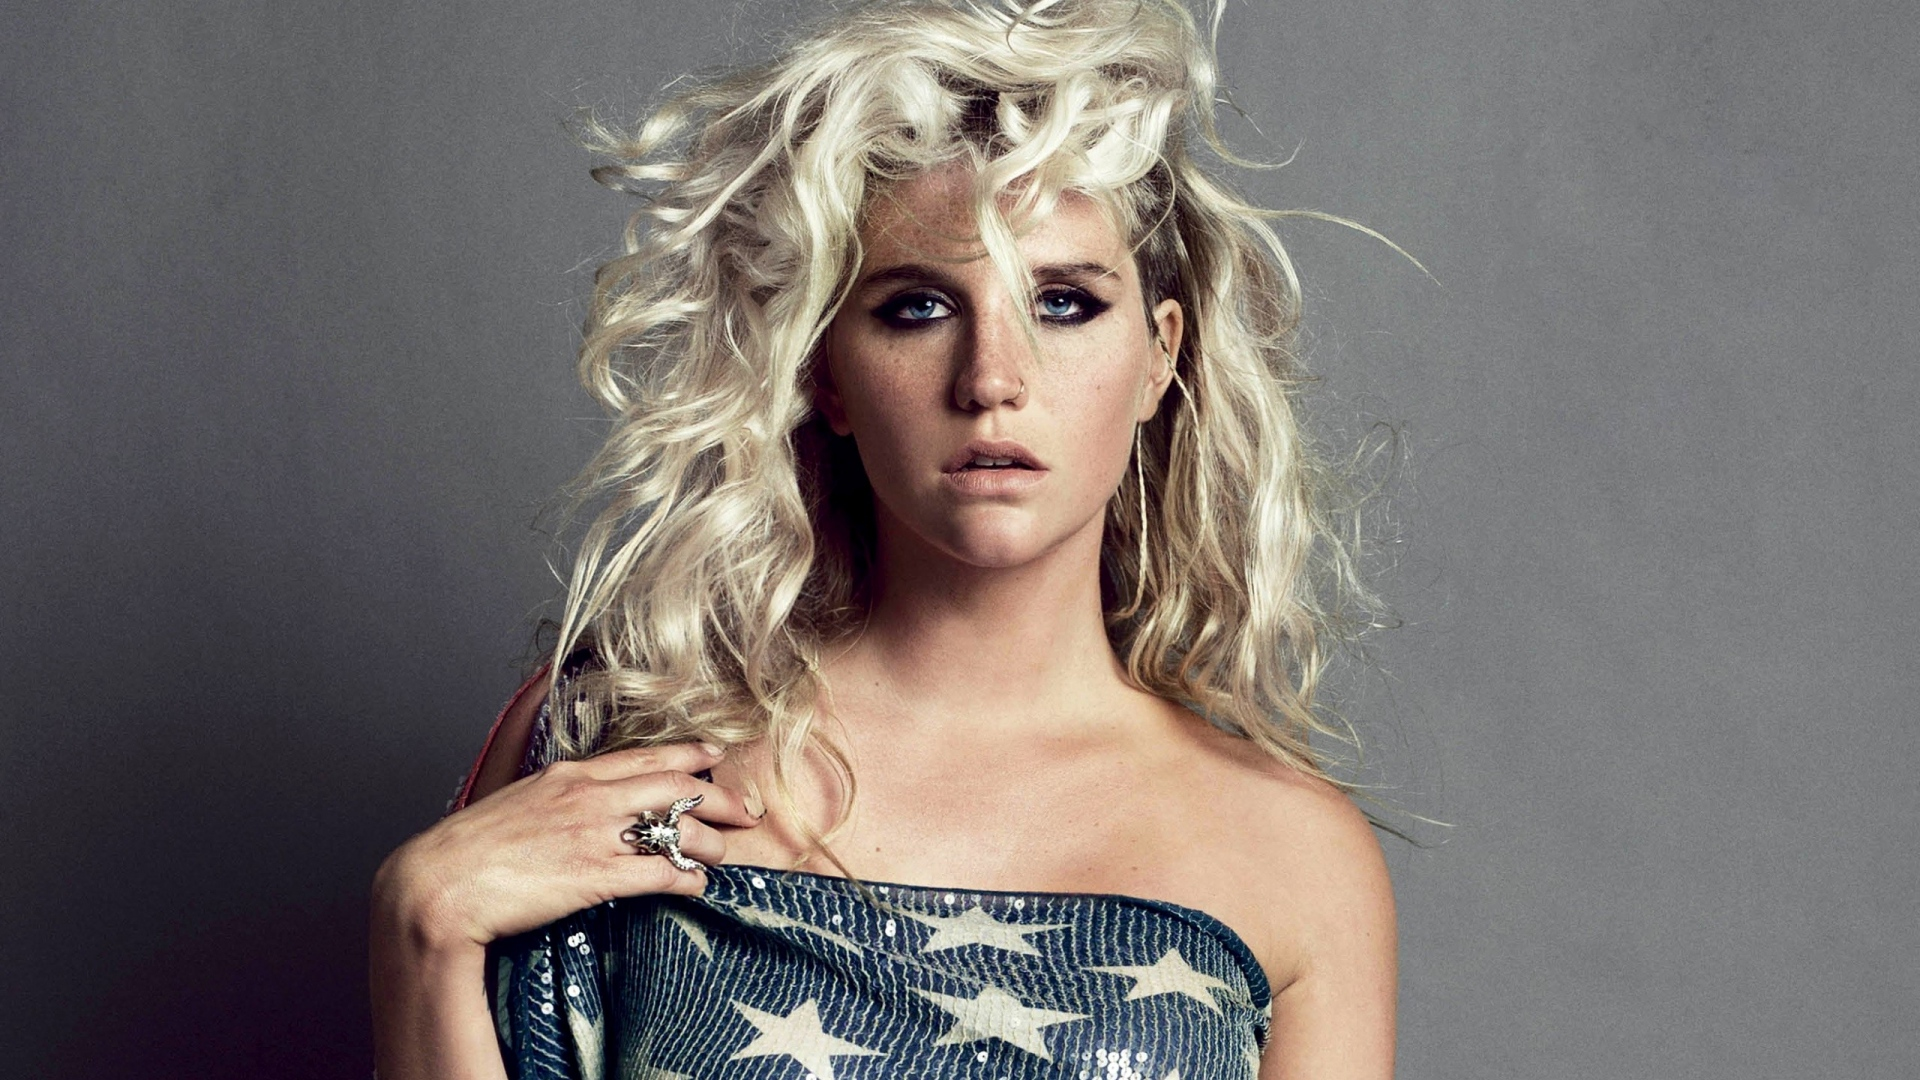 Download Wallpaper 1920x1080 kesha sebert flag blonde curls Full HD 1920x1080